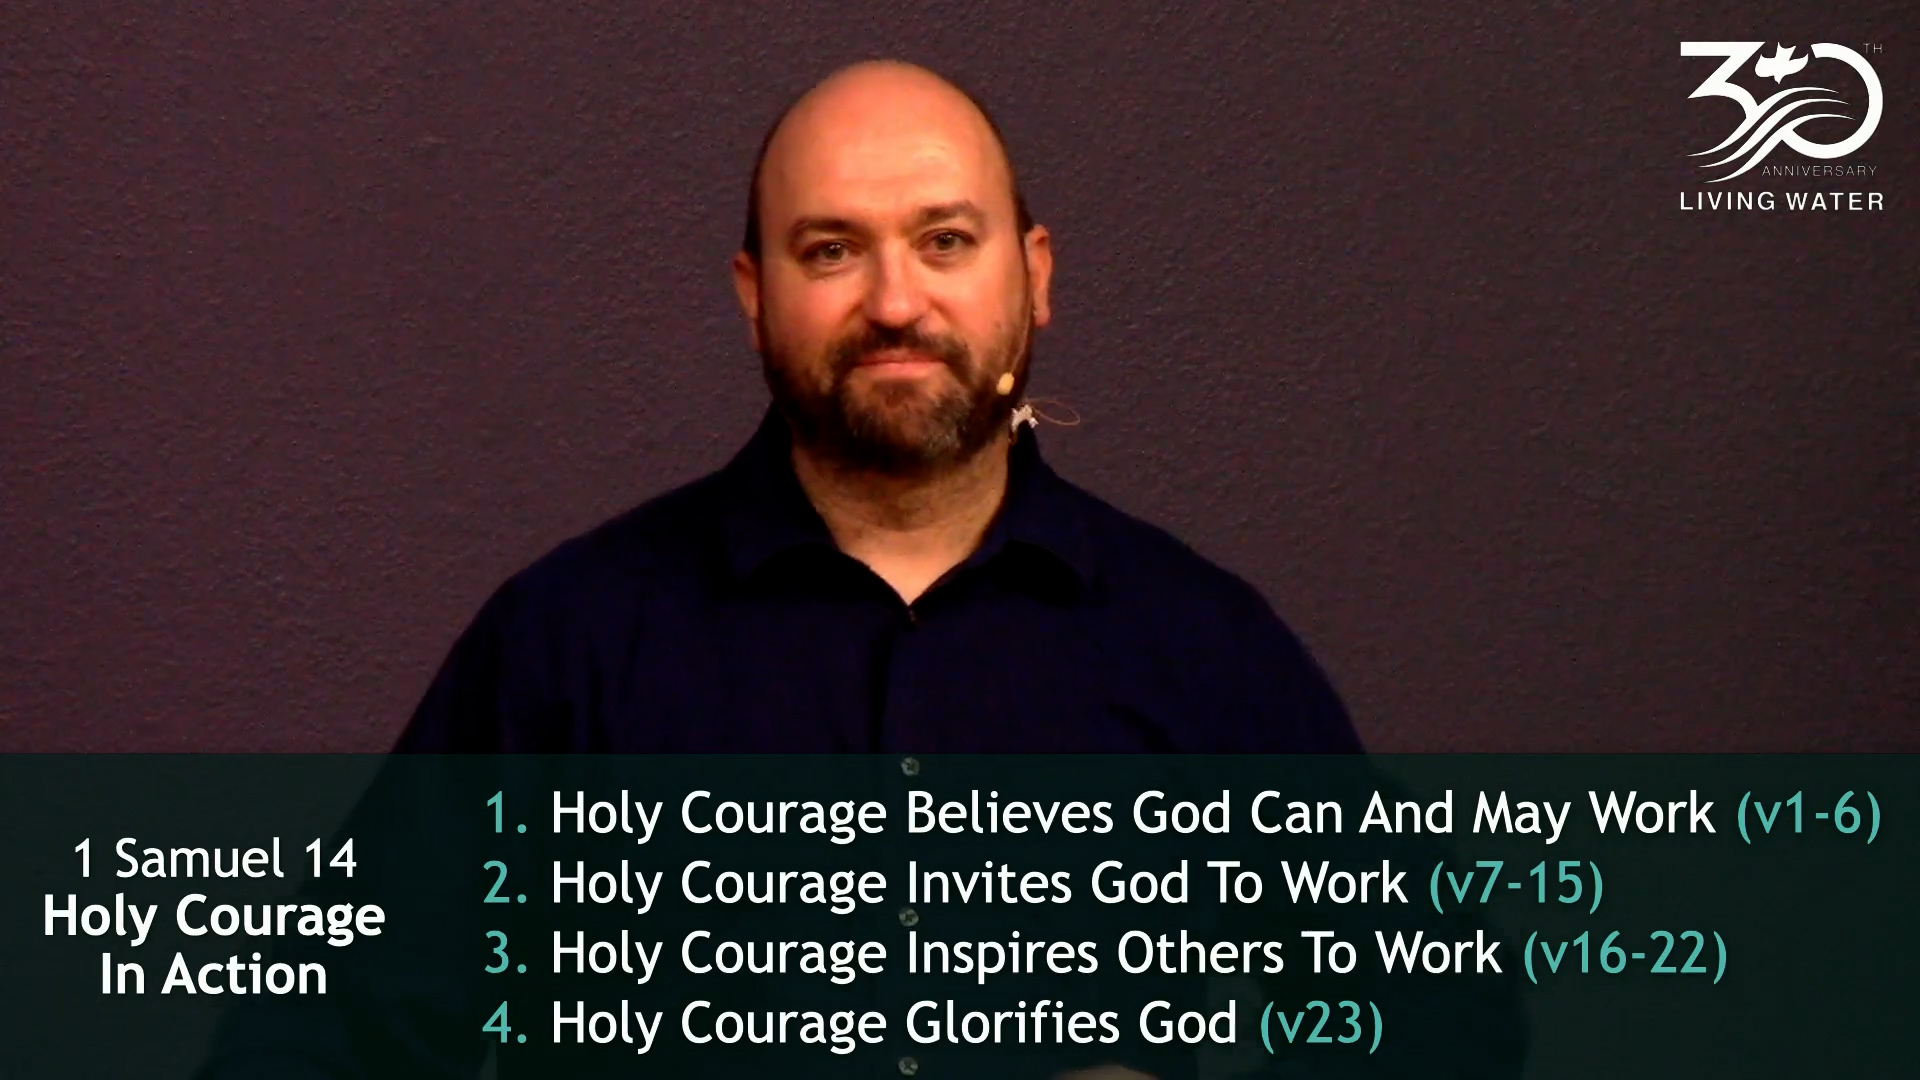 1 Samuel 14, Holy Courage In Action